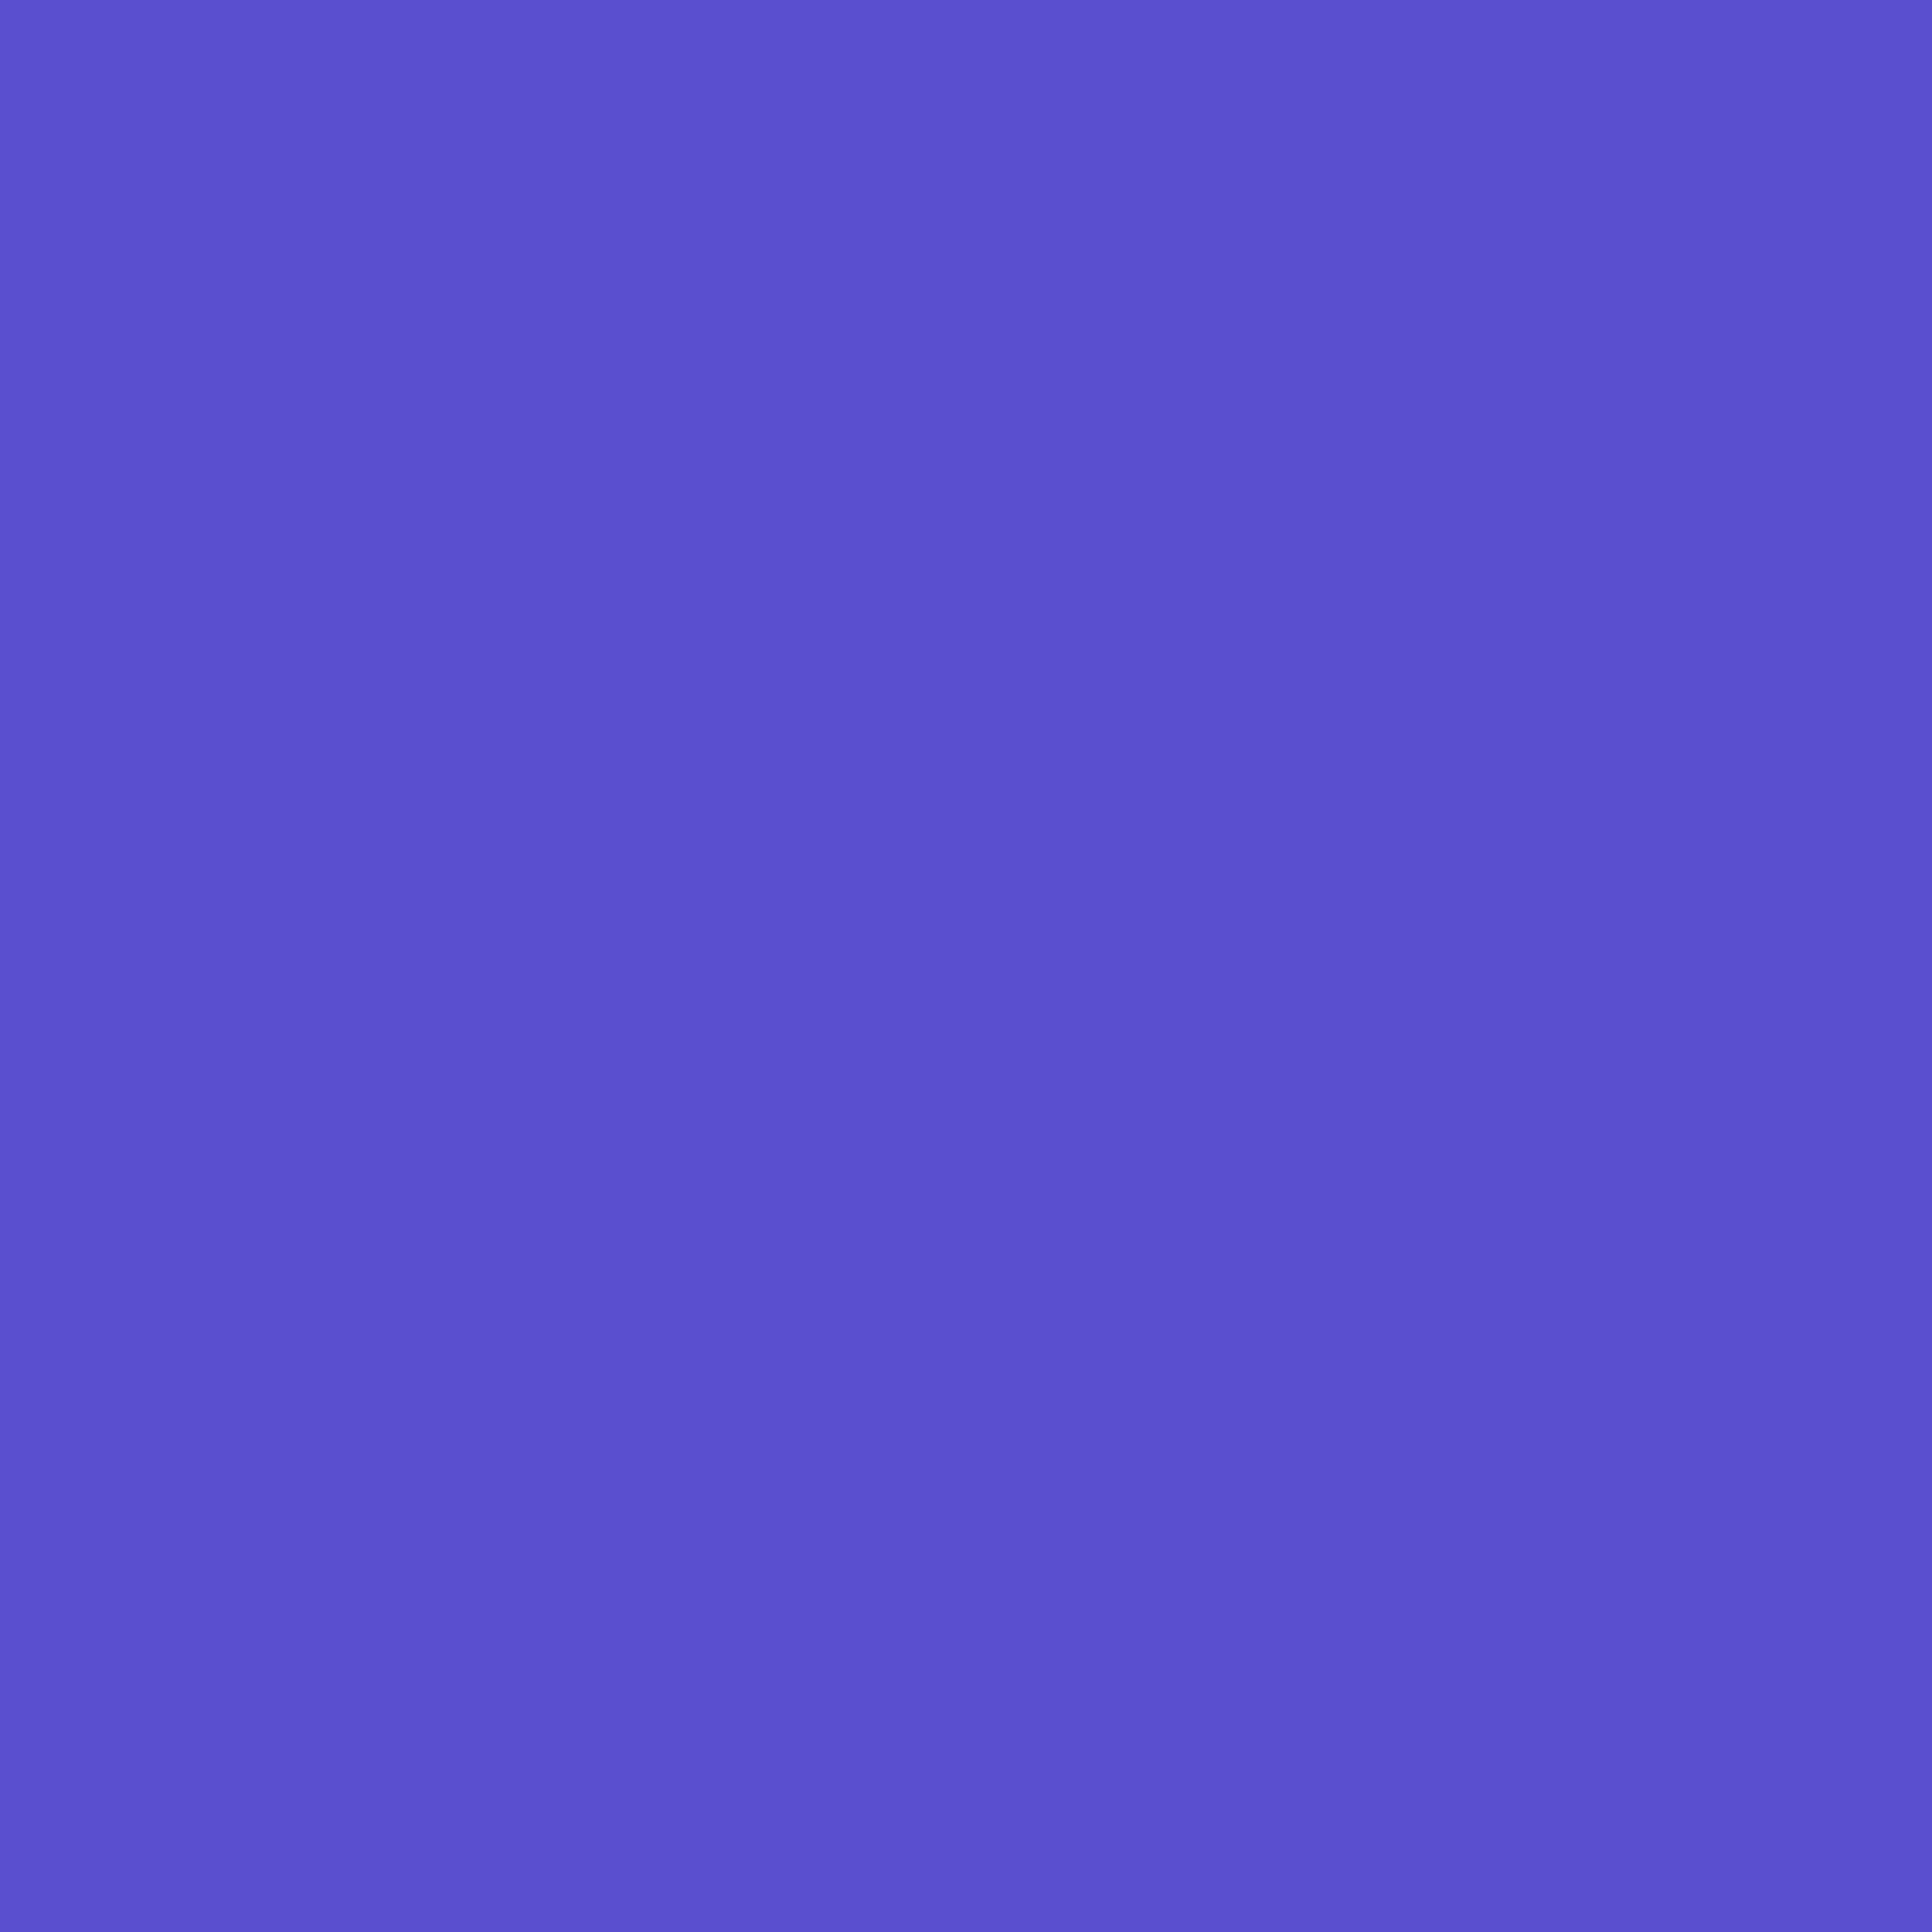 3600x3600 Iris Solid Color Background